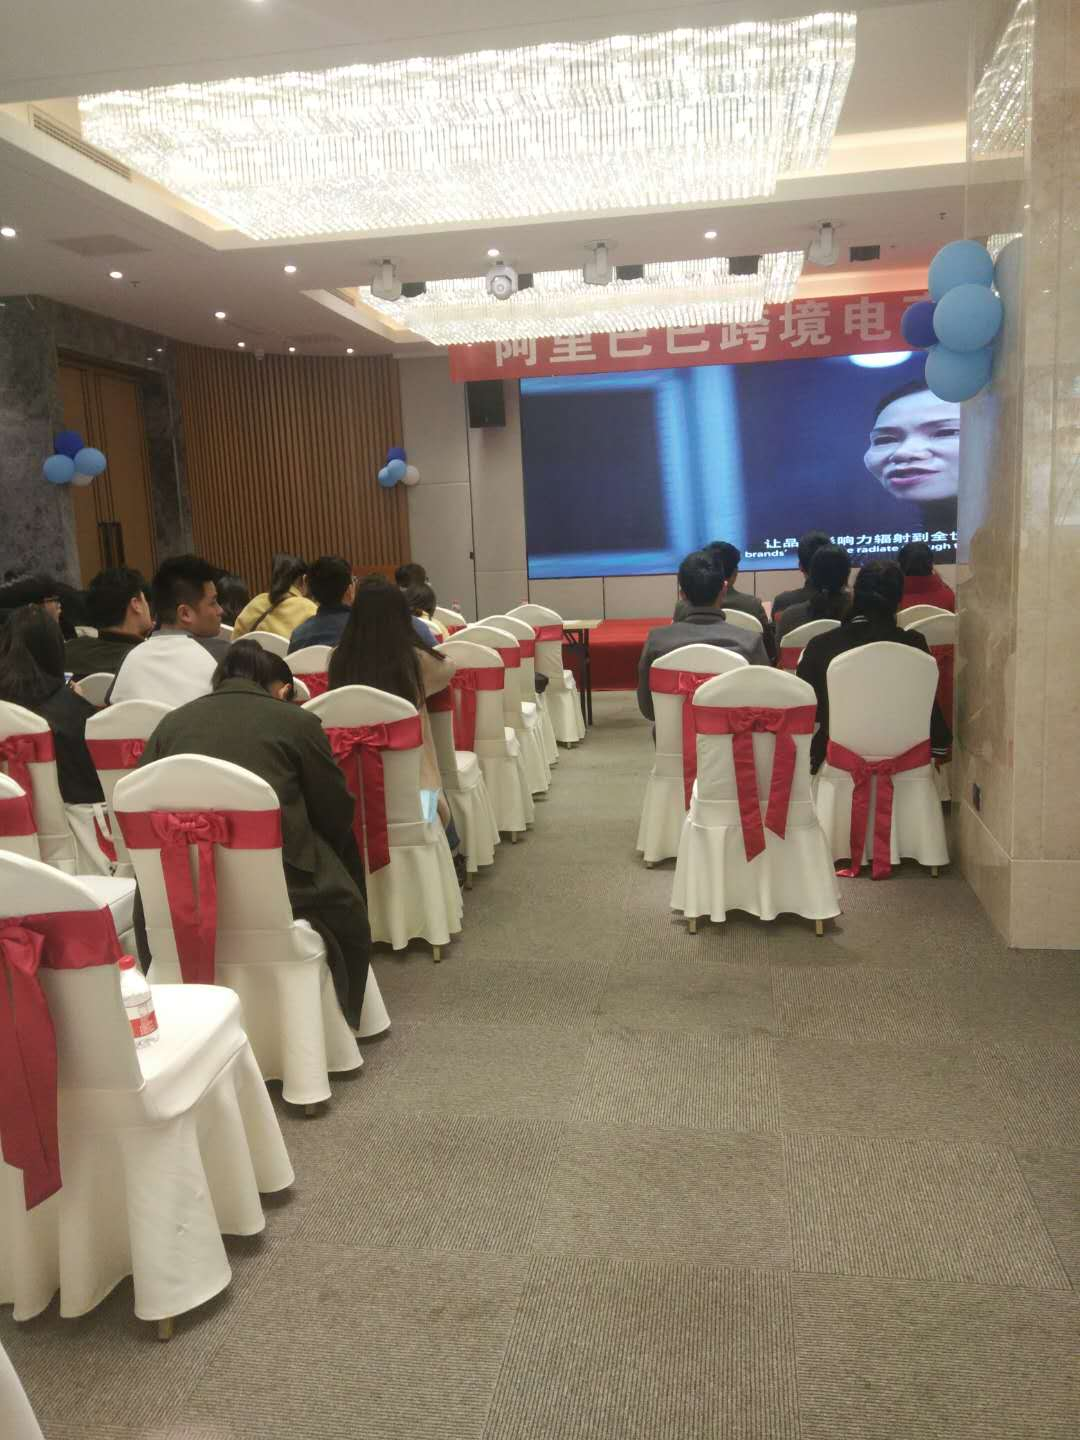 2019 BLS was invited to Alibaba's cross-border e-commerce training